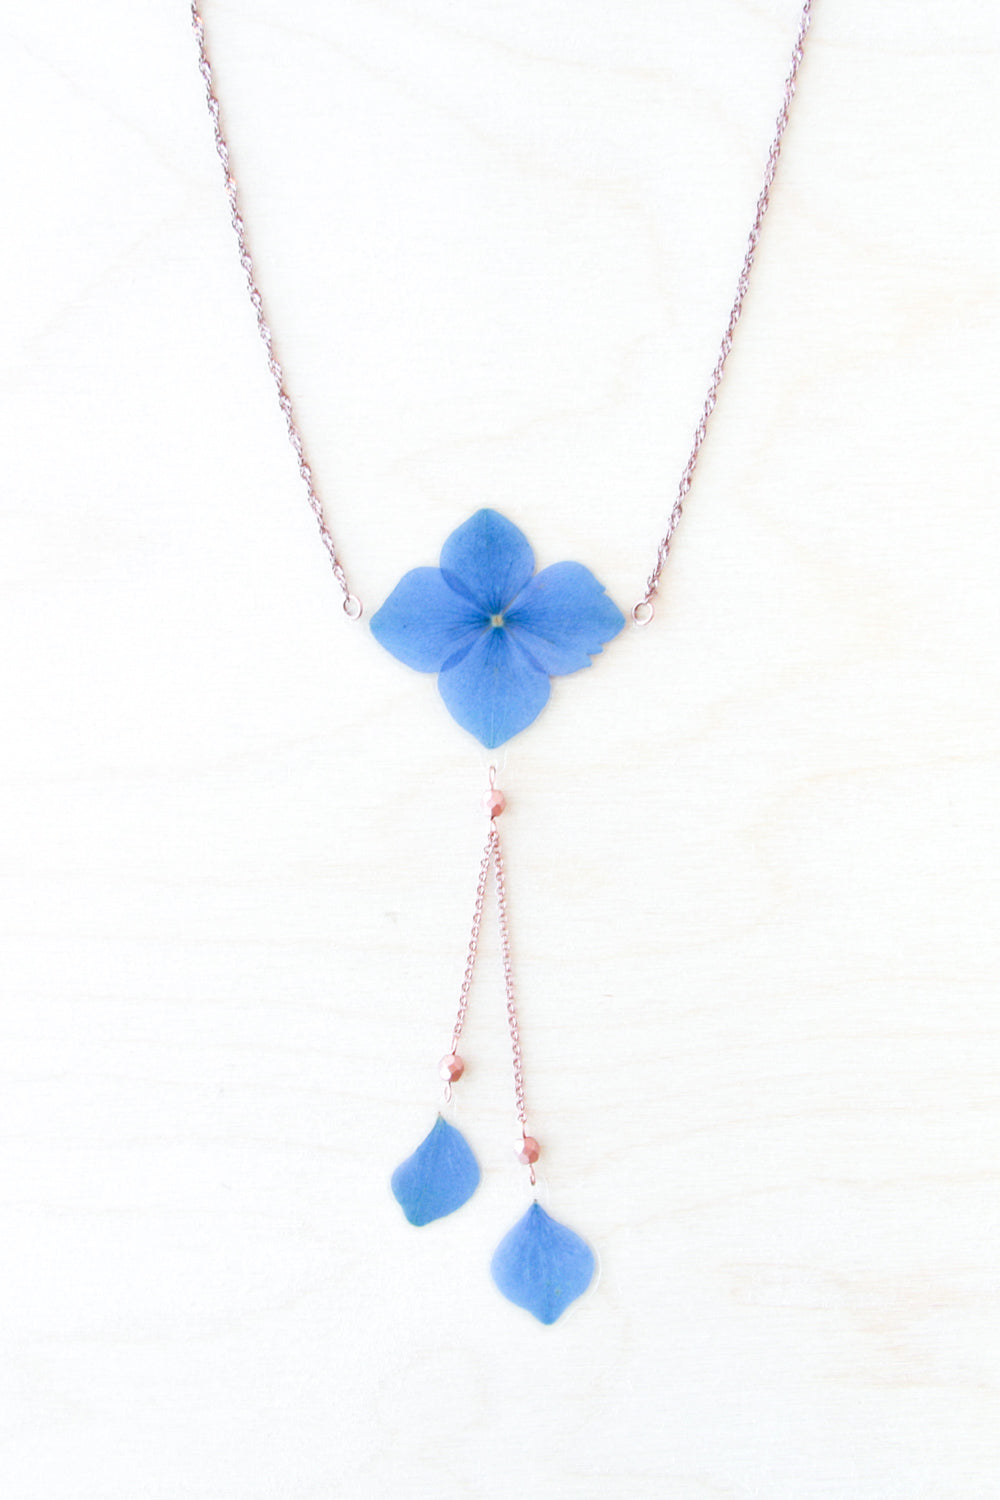 Blue Hydrangea Flower Lariat Necklace with Copper Beads